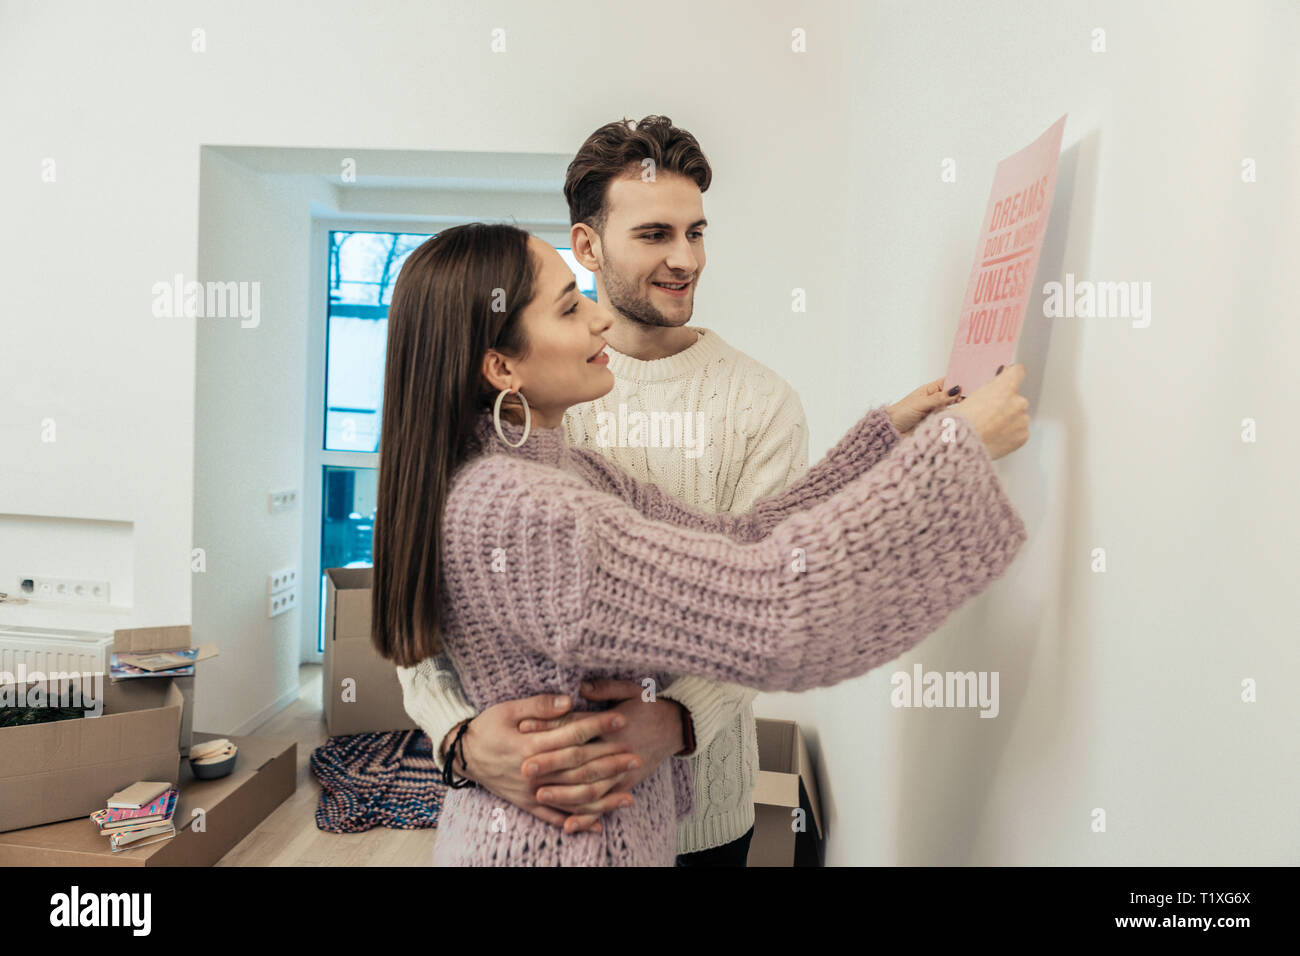 Wife outing some poster on the wall while husband hugging her - Stock Image